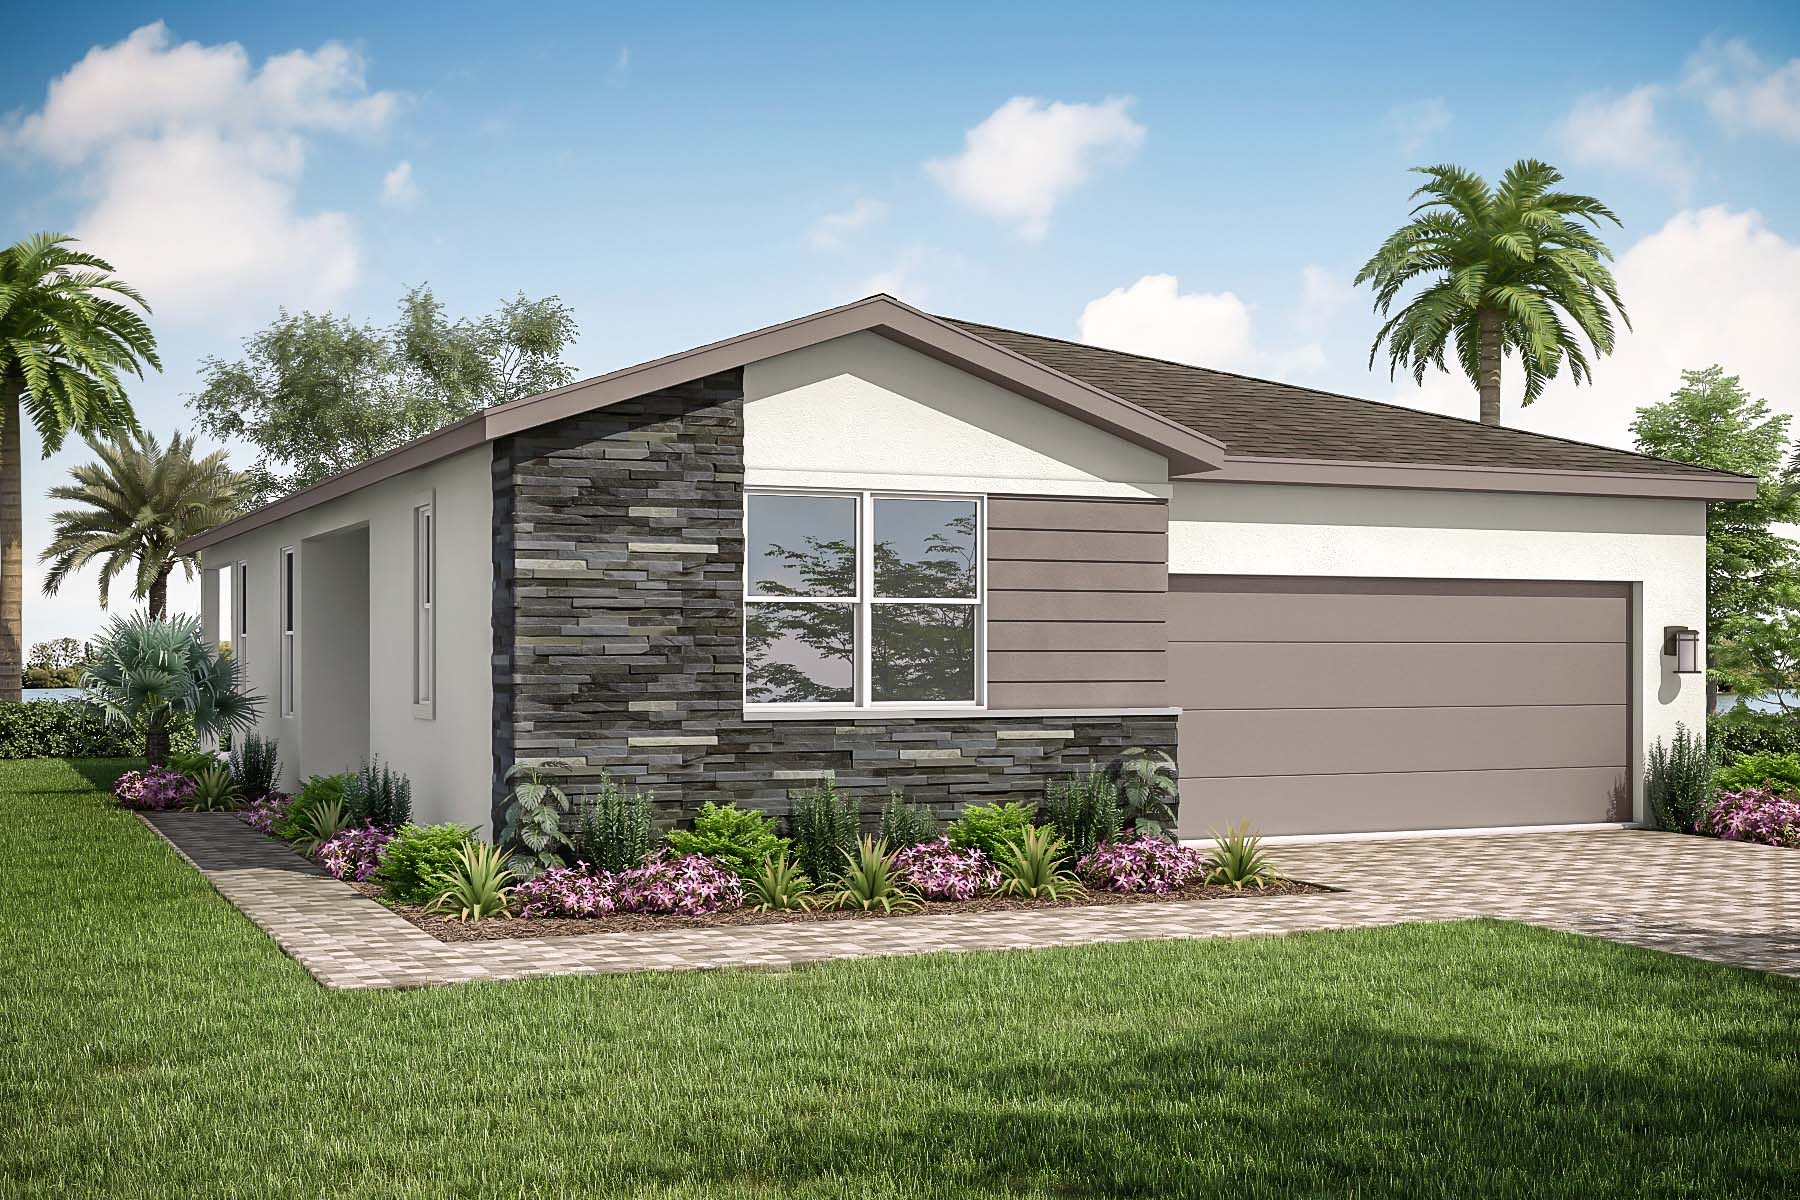 Lilac Plan Elevation Front at Tradition - Manderlie in Port St. Lucie Florida by Mattamy Homes